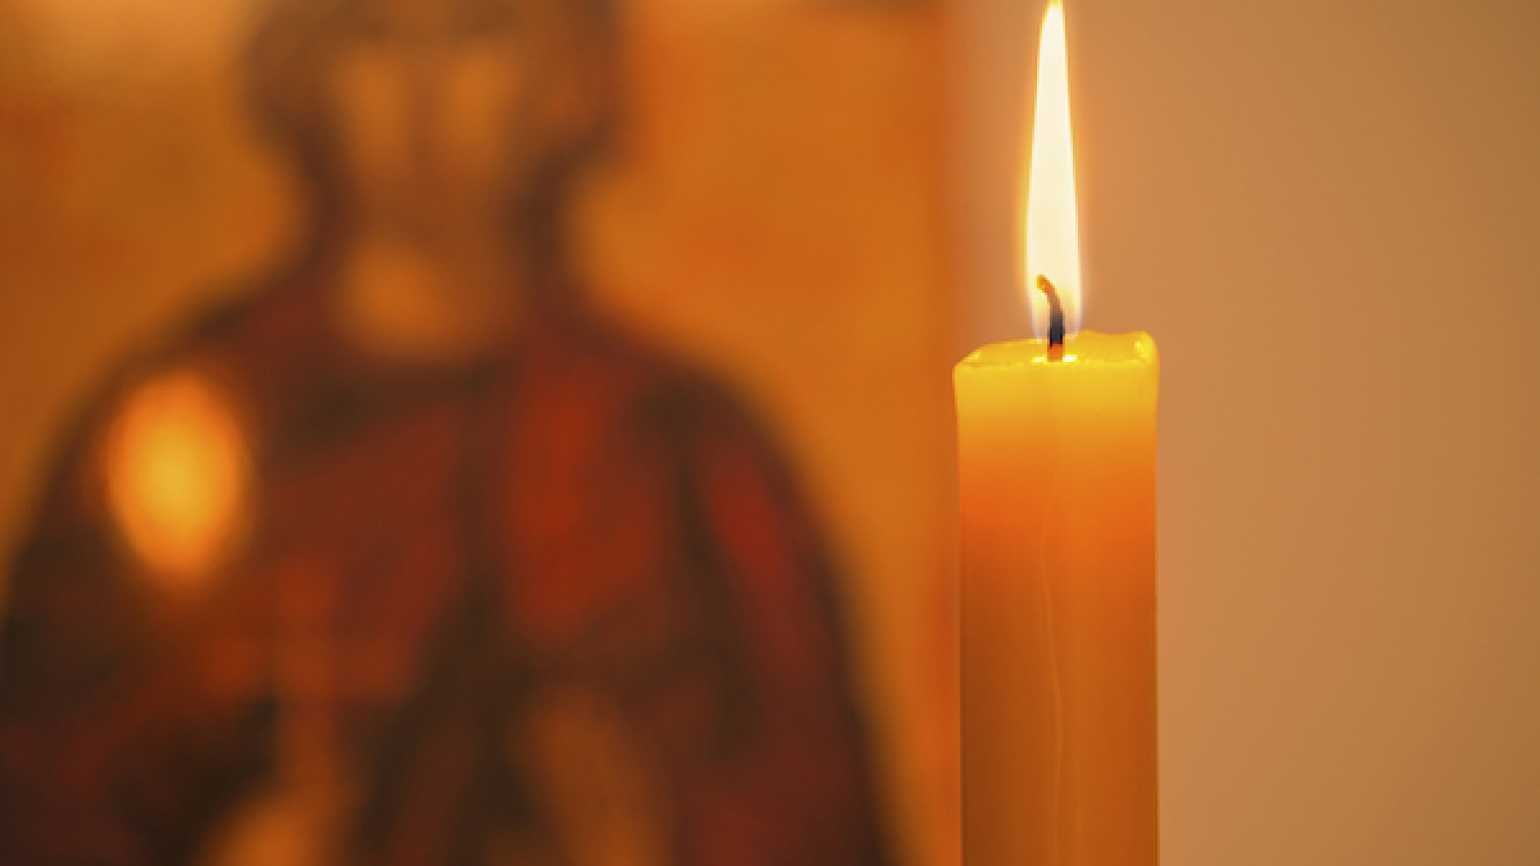 On All Saints Day, we're all saints, those who believe and struggle to grow in faith and overcome fear.